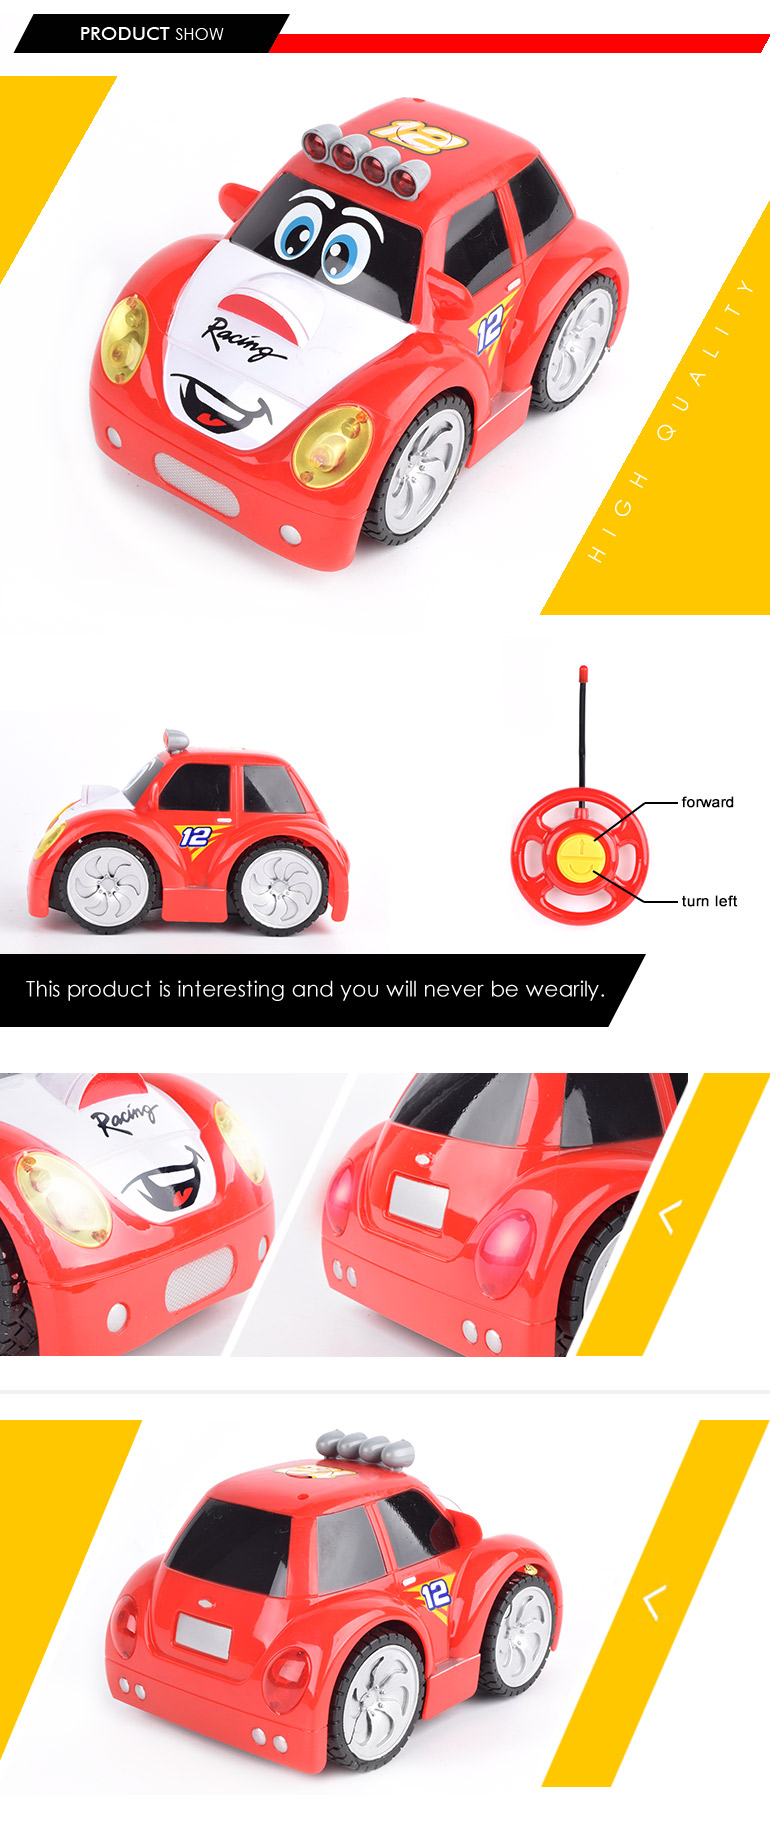 alibaba china market design your own toy car with remote control function